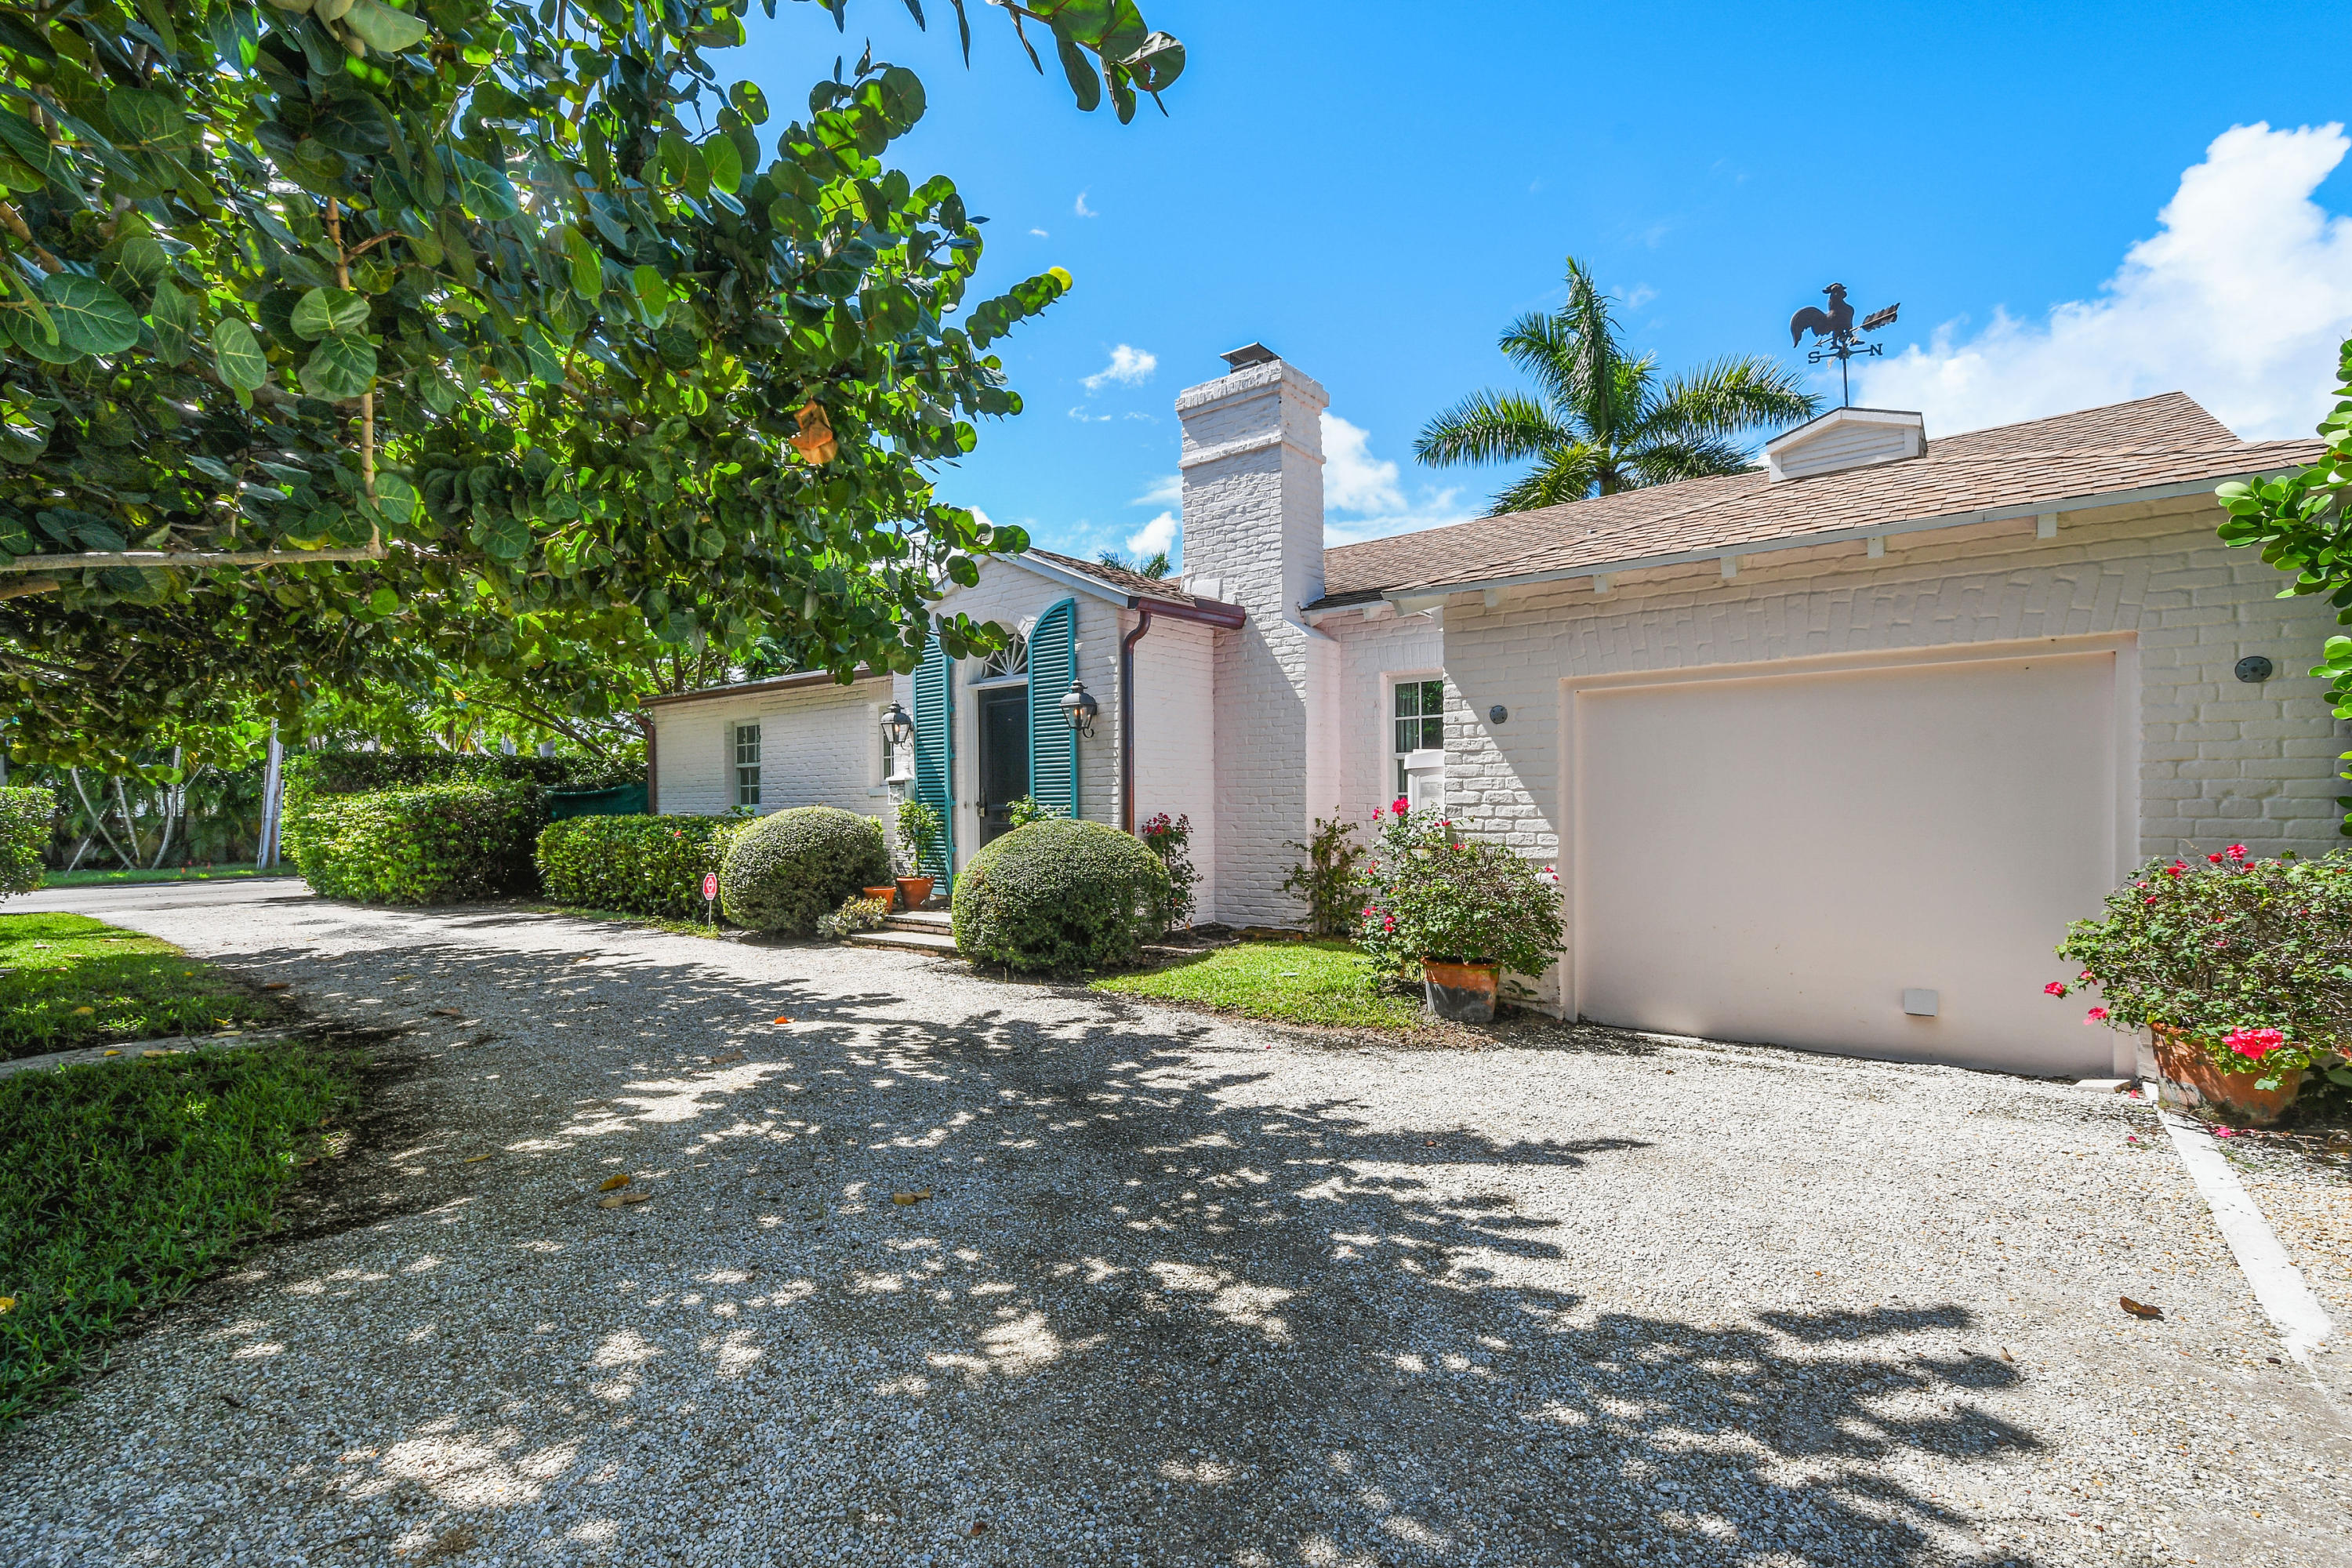 3301 Flagler Drive, West Palm Beach, Florida 33407, 3 Bedrooms Bedrooms, ,2 BathroomsBathrooms,Single Family,For Sale,North Shore Terrace,Flagler,RX-10568831